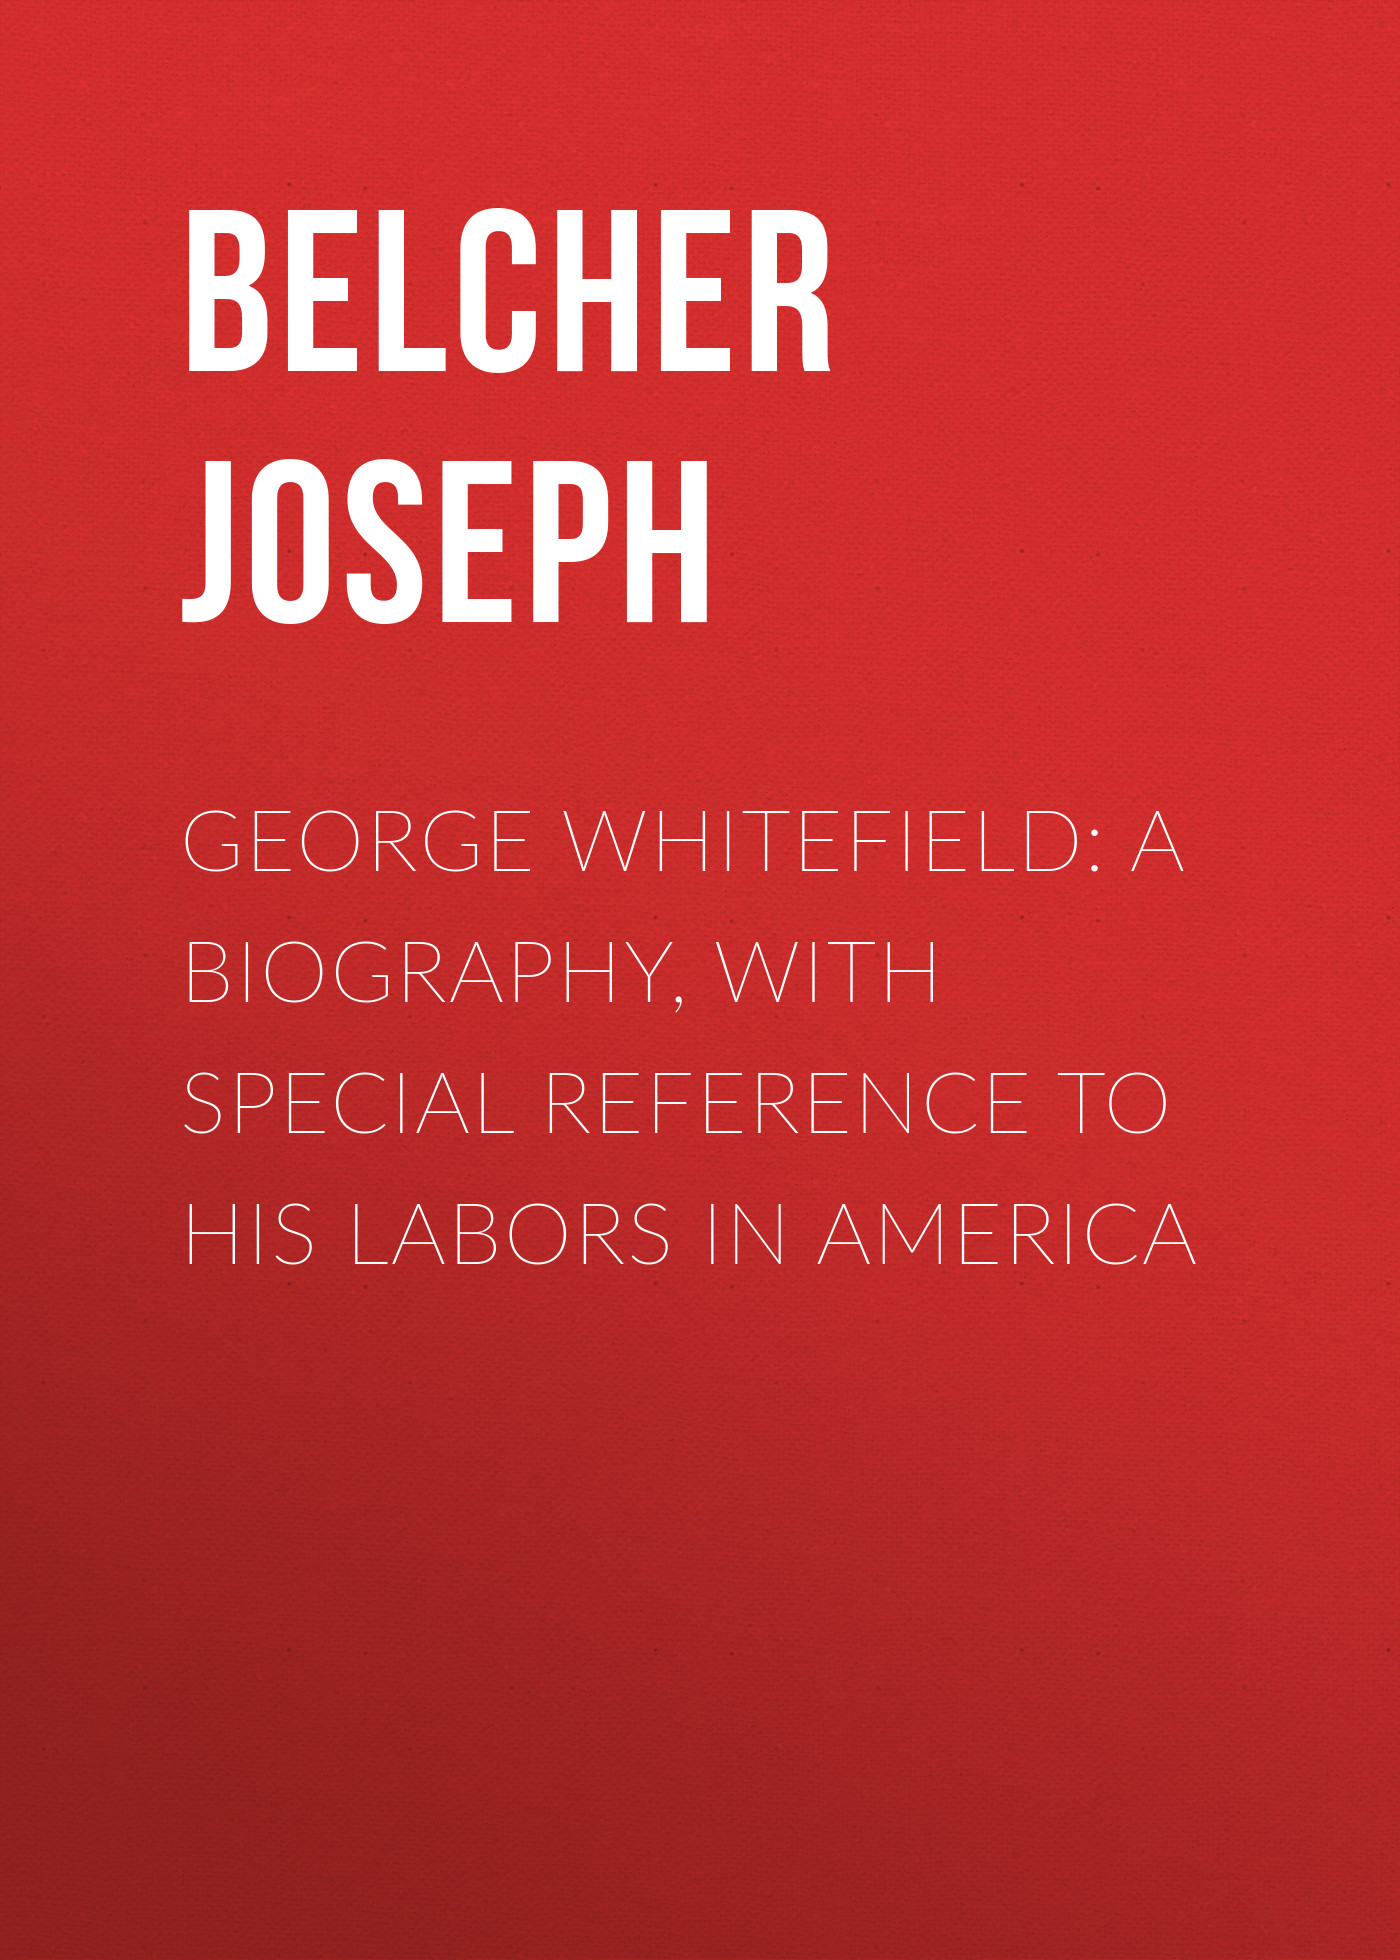 Belcher Joseph George Whitefield: A Biography, with special reference to his labors in America